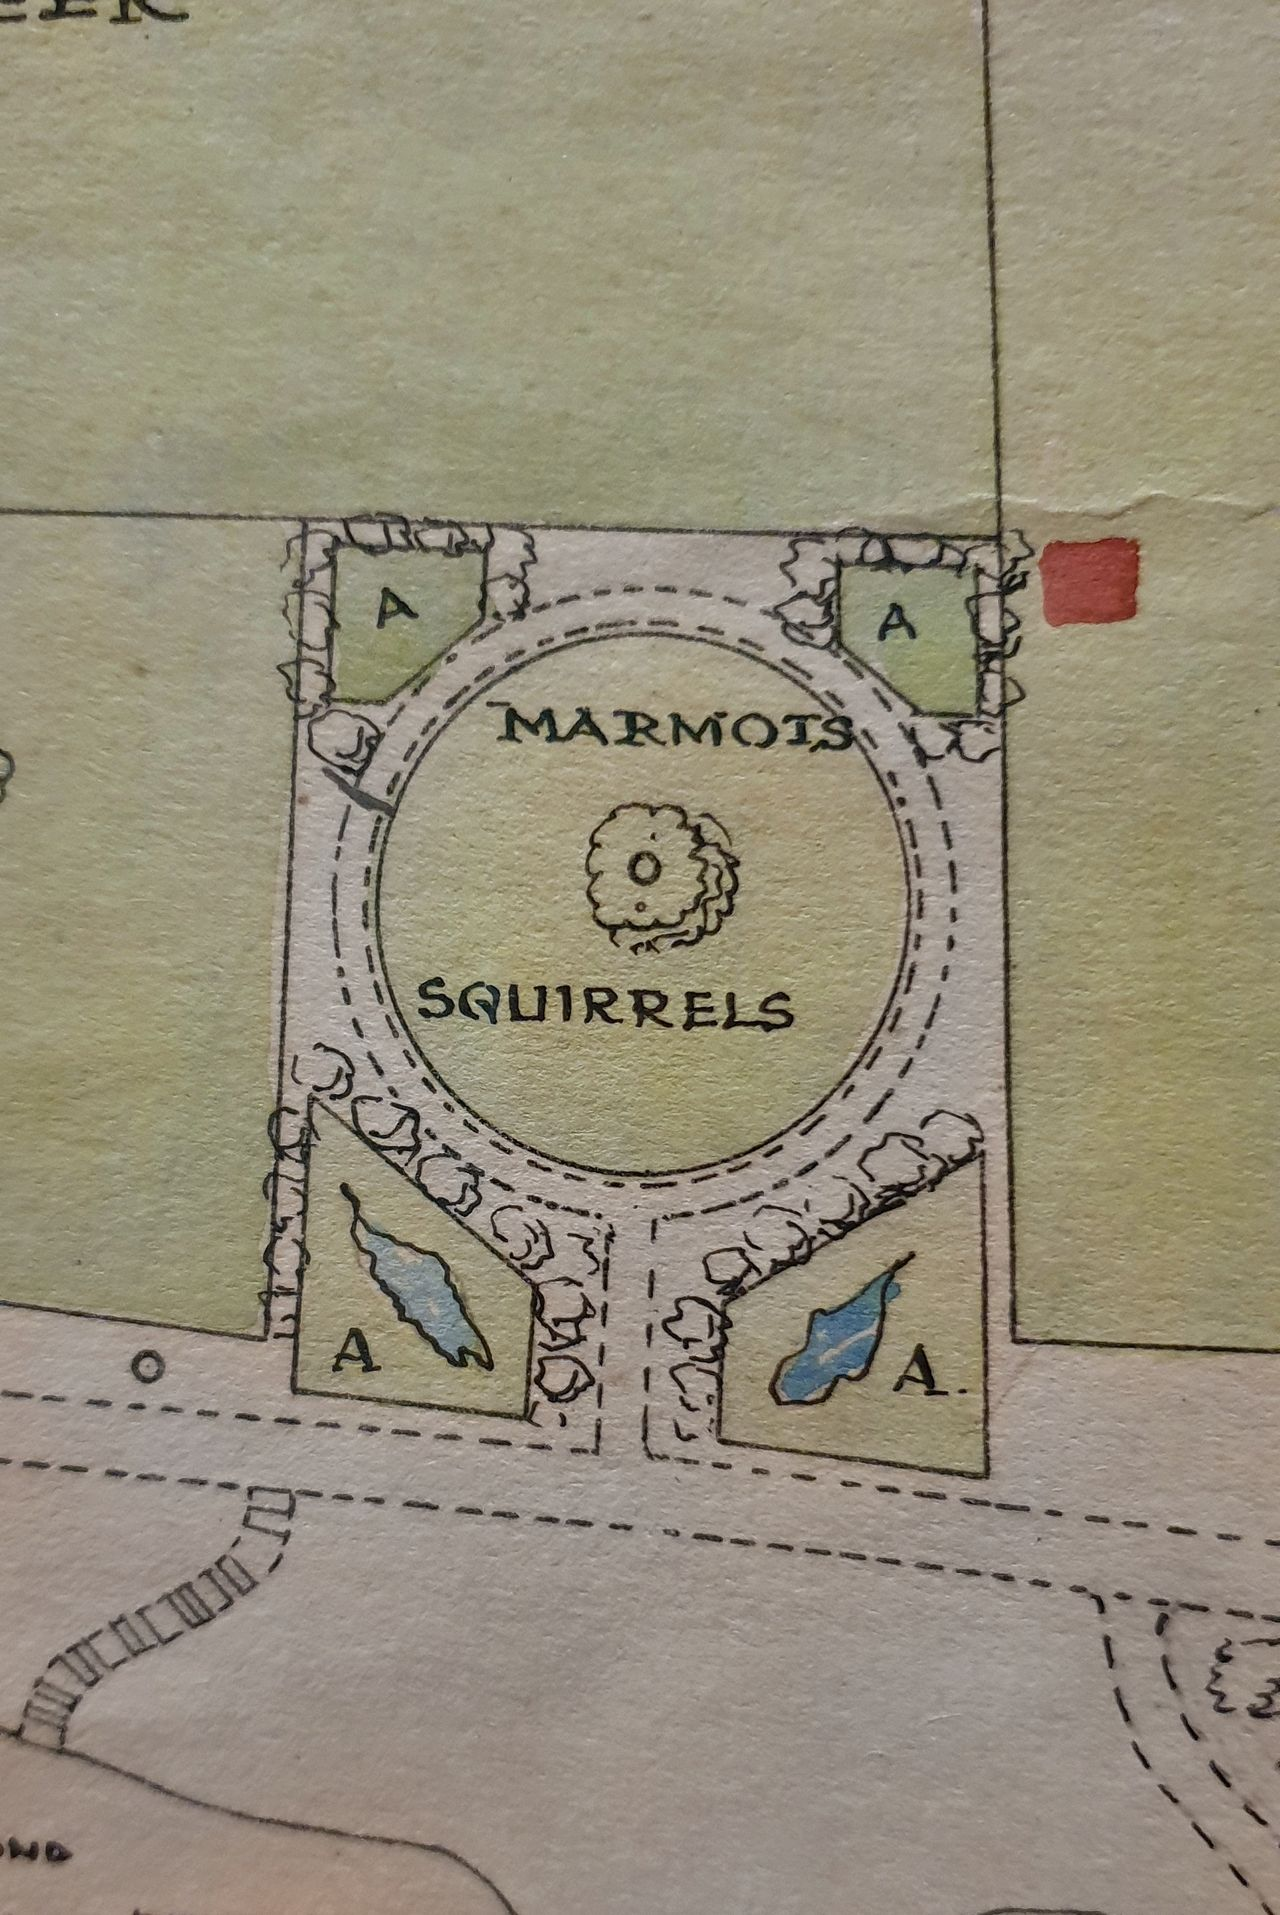 Close-up of the plan for the Scottish Zoological Garden. Sections of the plan are coloured yellow, green, red. In squares and other shapes across the plan, denoting which animals are where, animal names are written.  This one shows a circular area with marmots and squirrels written on it.